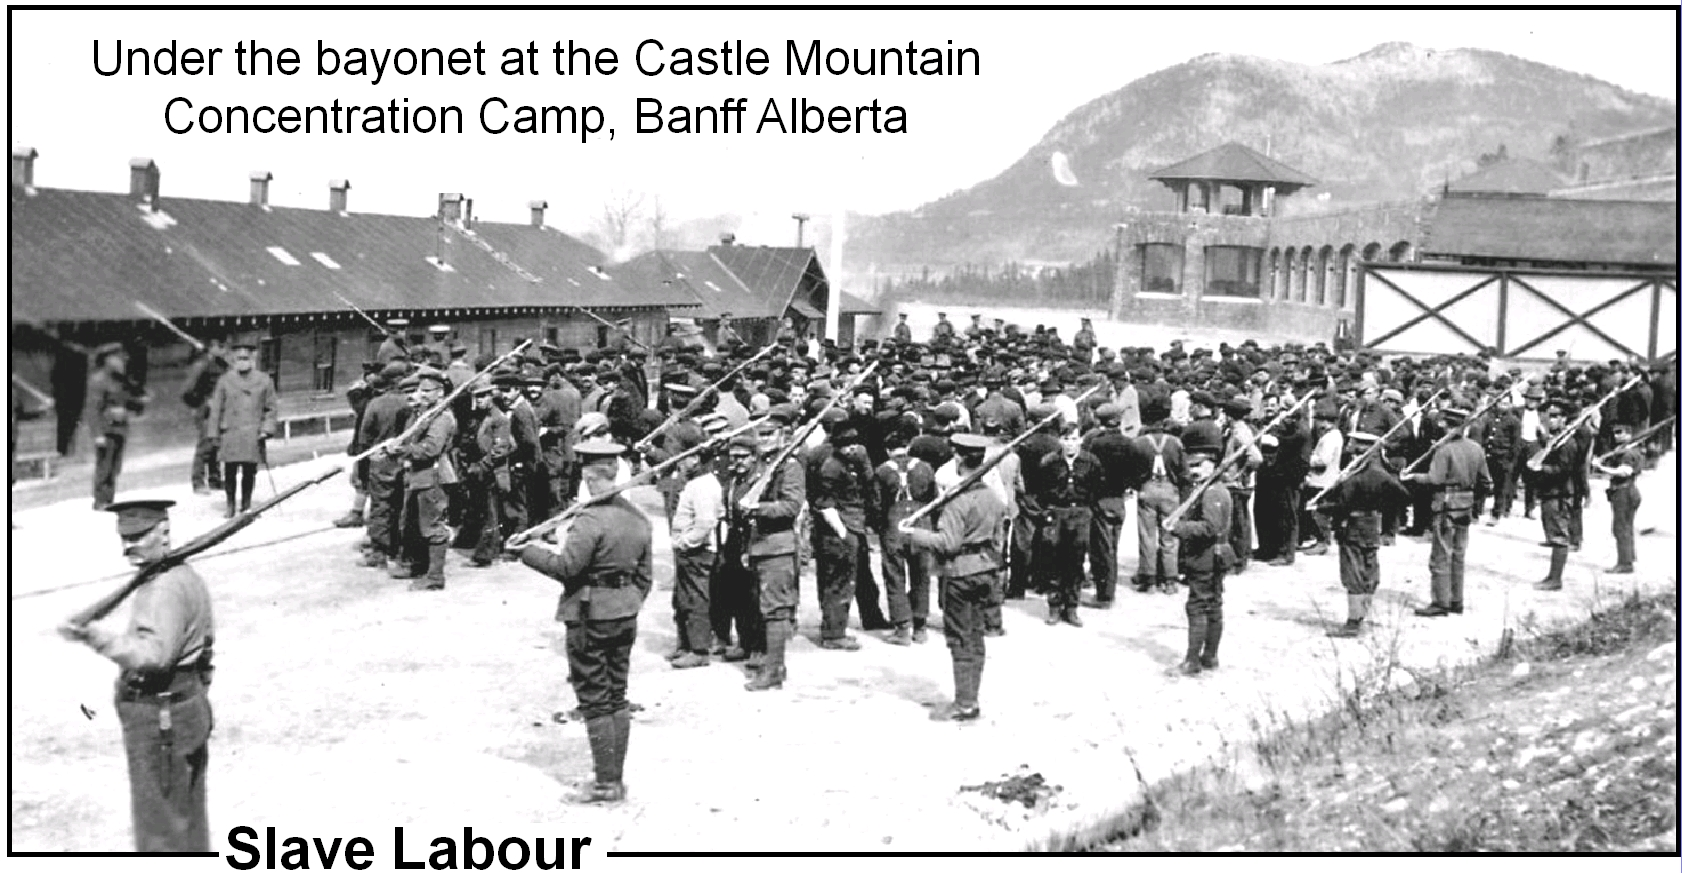 Under the bayonet at the Castle Mountain Concentrtation Camp, Banff Alberta